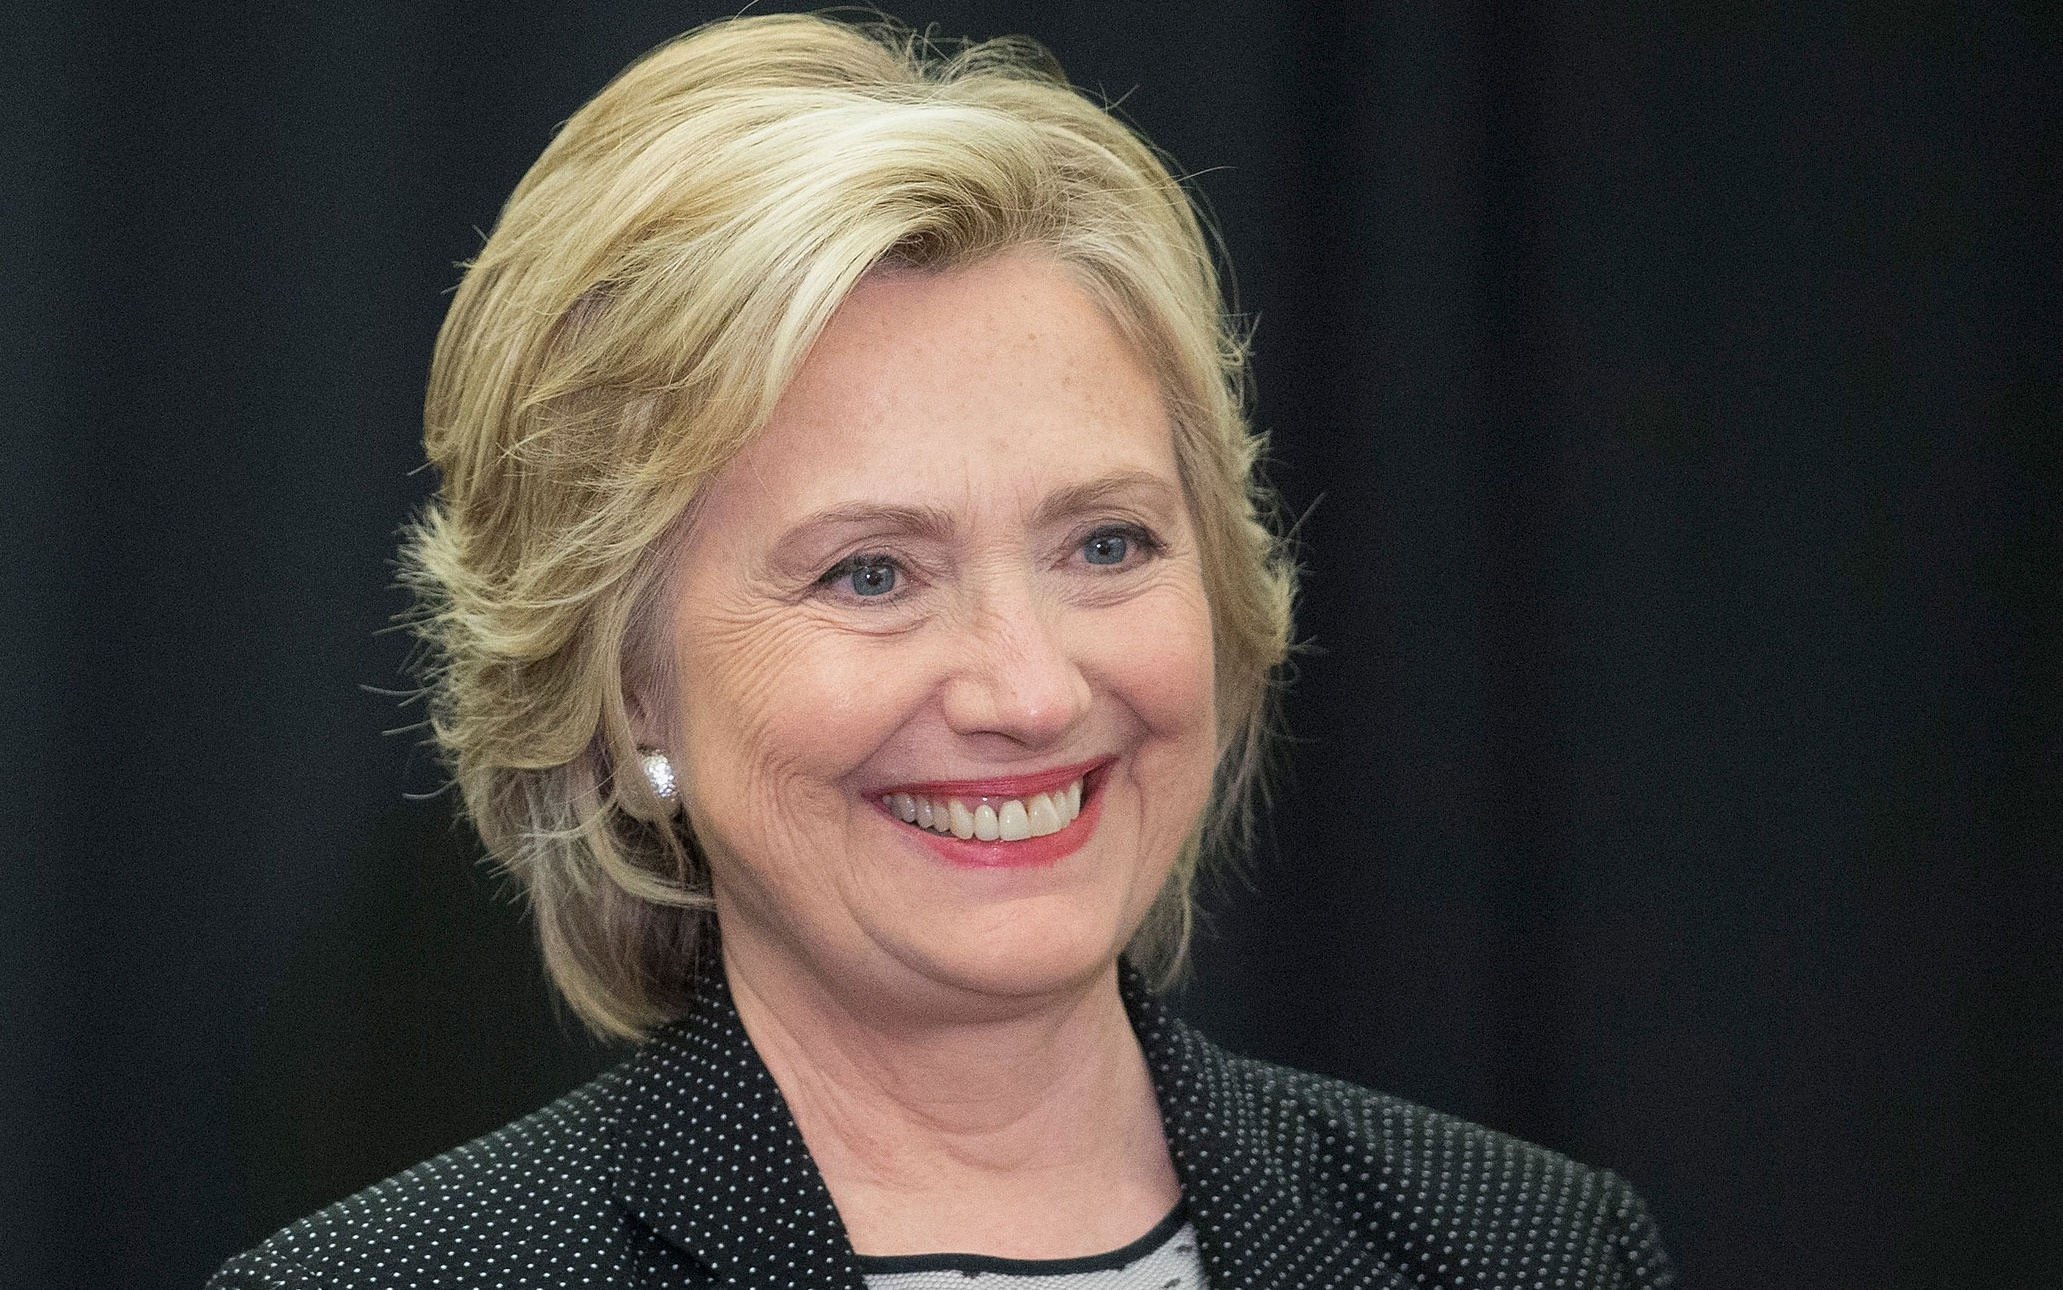 My Take on Hillary Clinton's Trust Issue